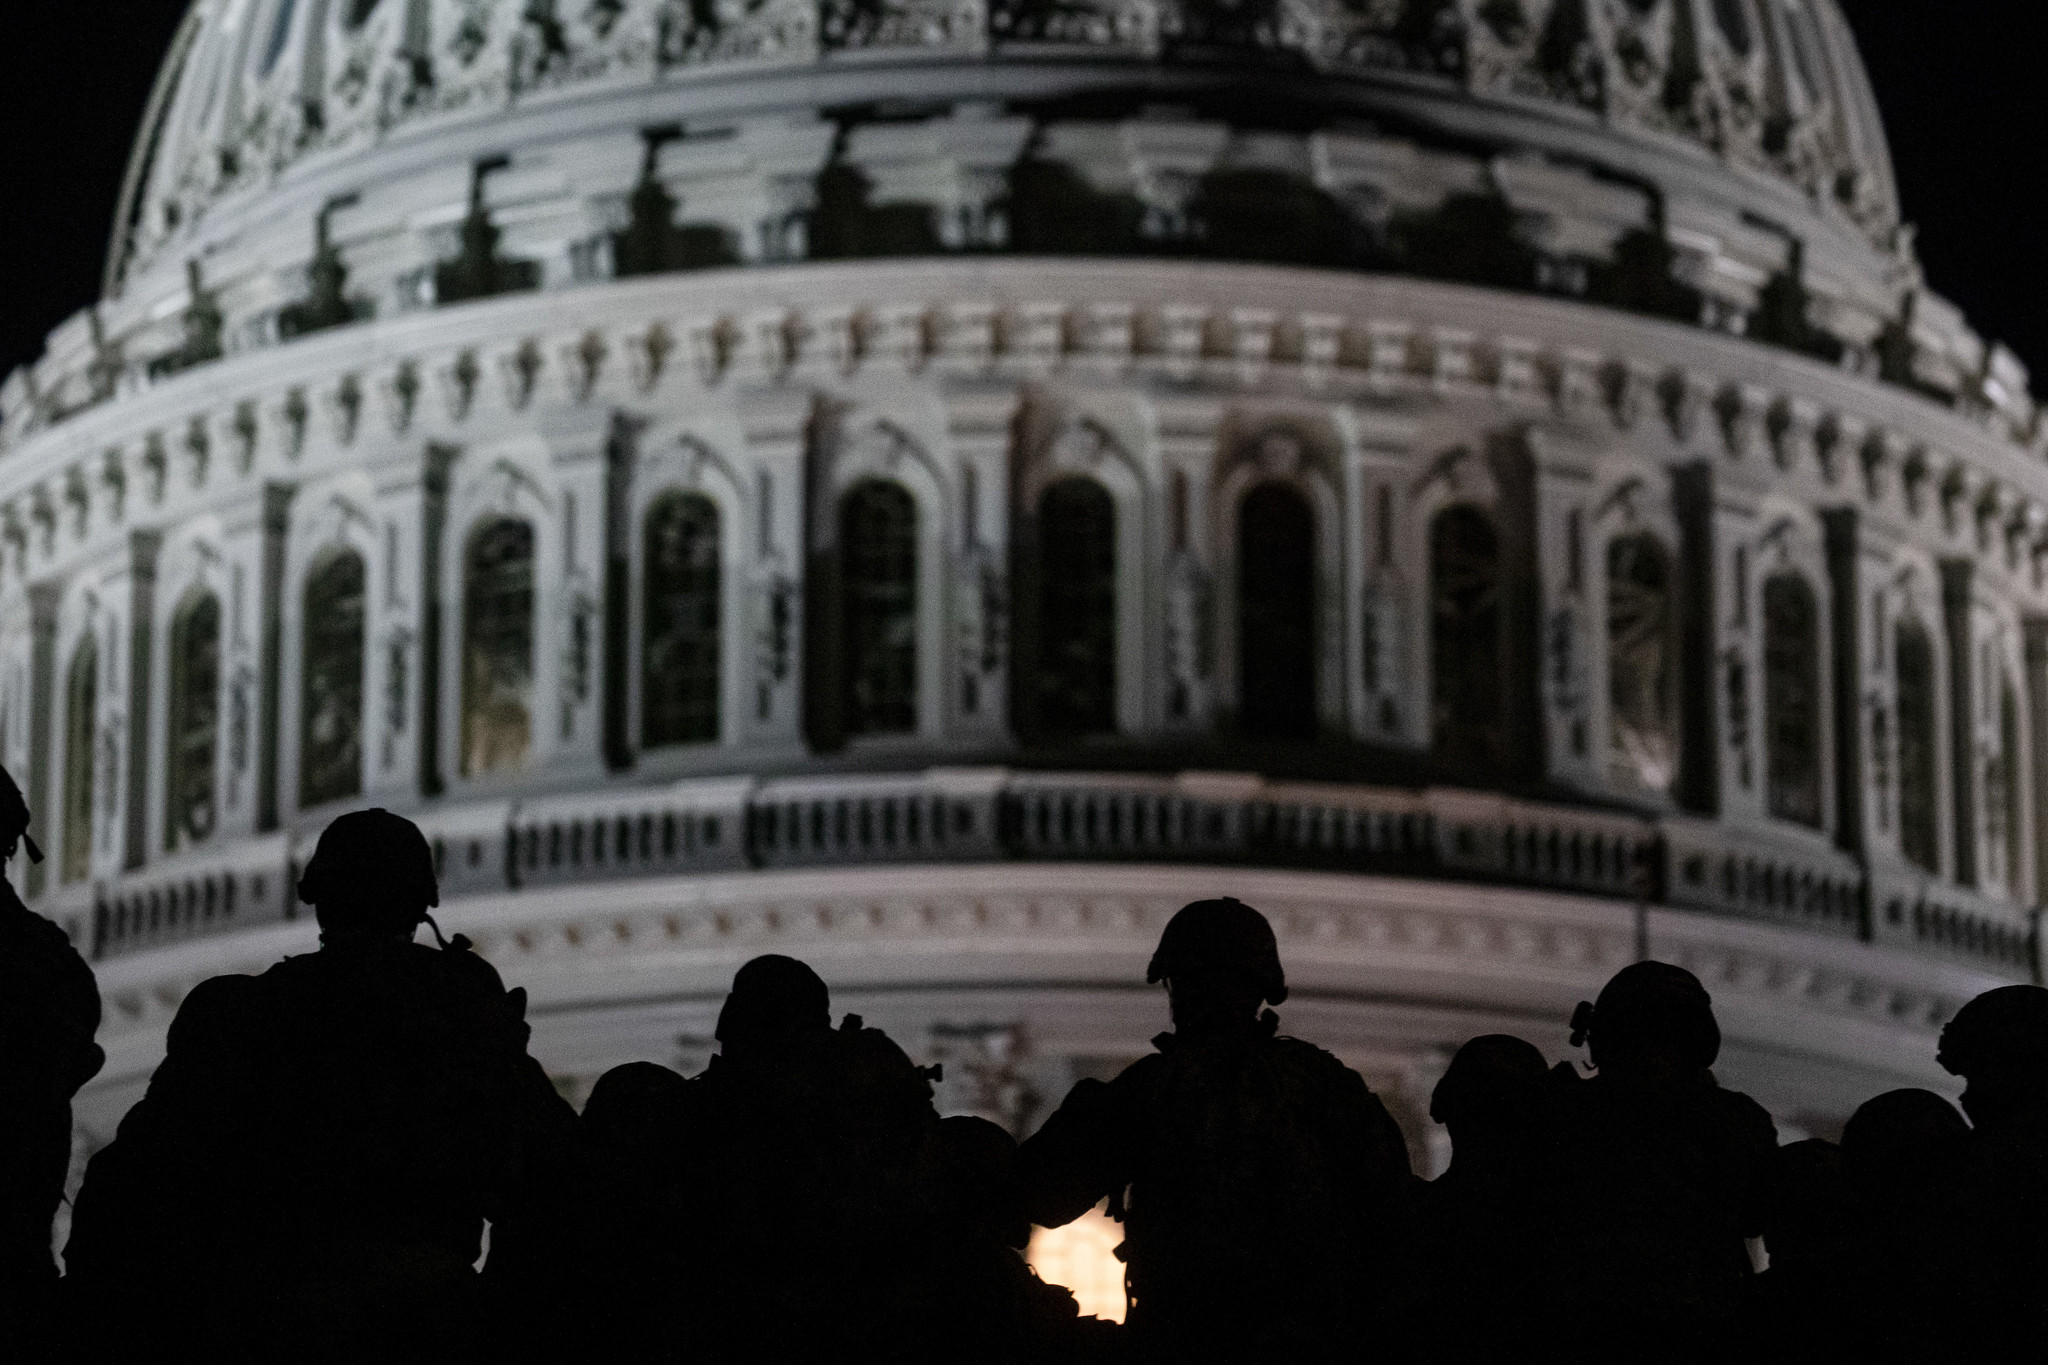 U.S. soldiers with the Virginia National Guard listen to a squad leader briefing after arriving near the Capitol in Washington on, Jan. 13, 2021. (Master Sgt. Matt Hecht/Air National Guard)